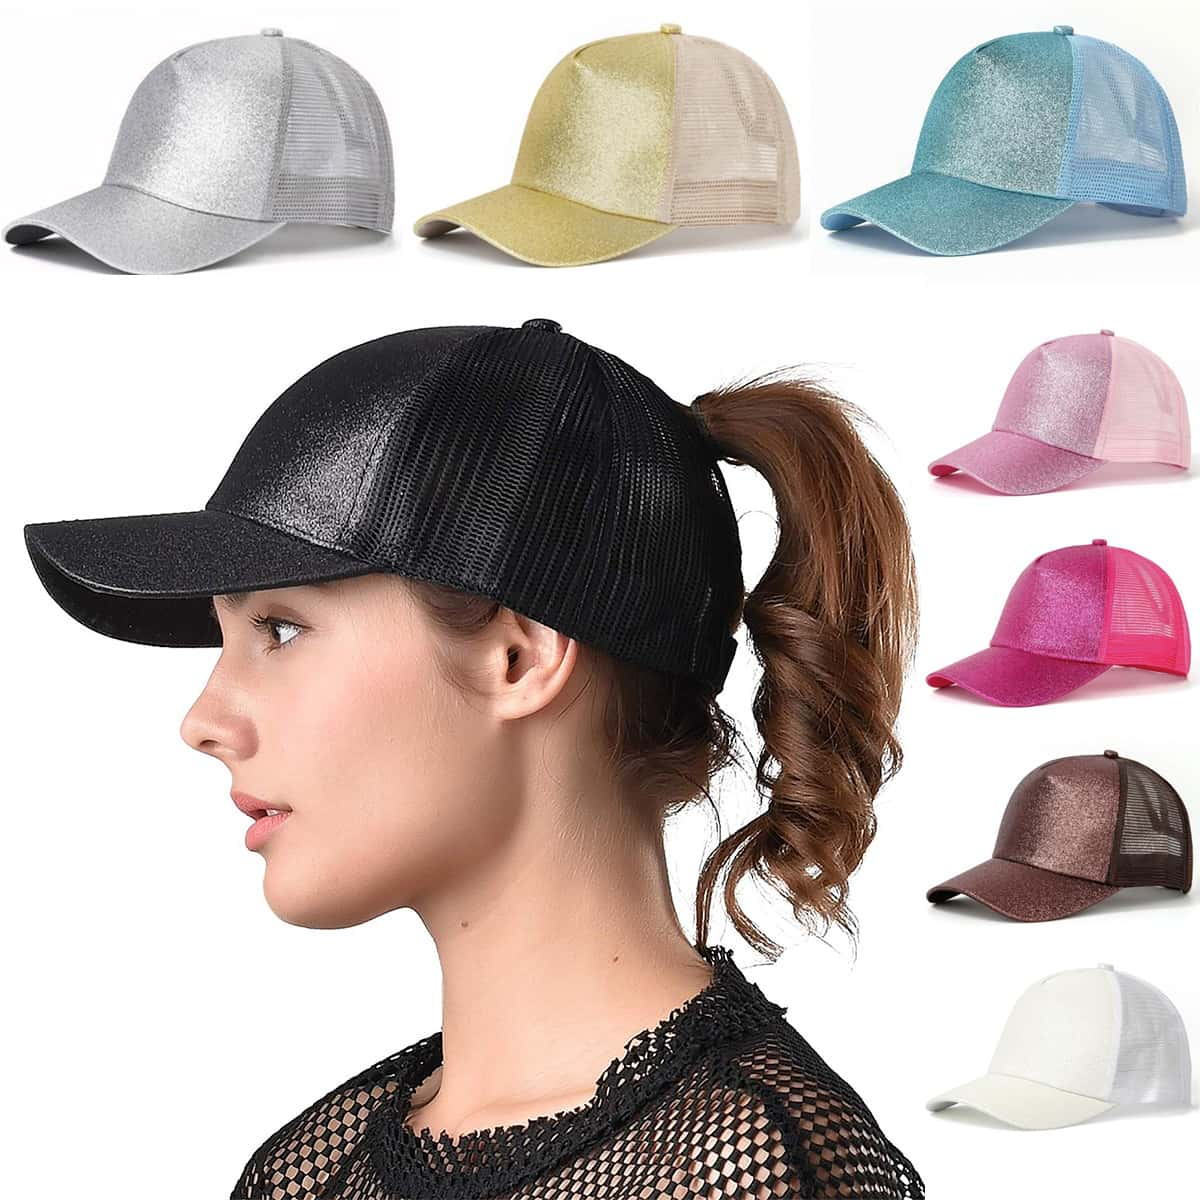 High Ponytail Baseball Cap